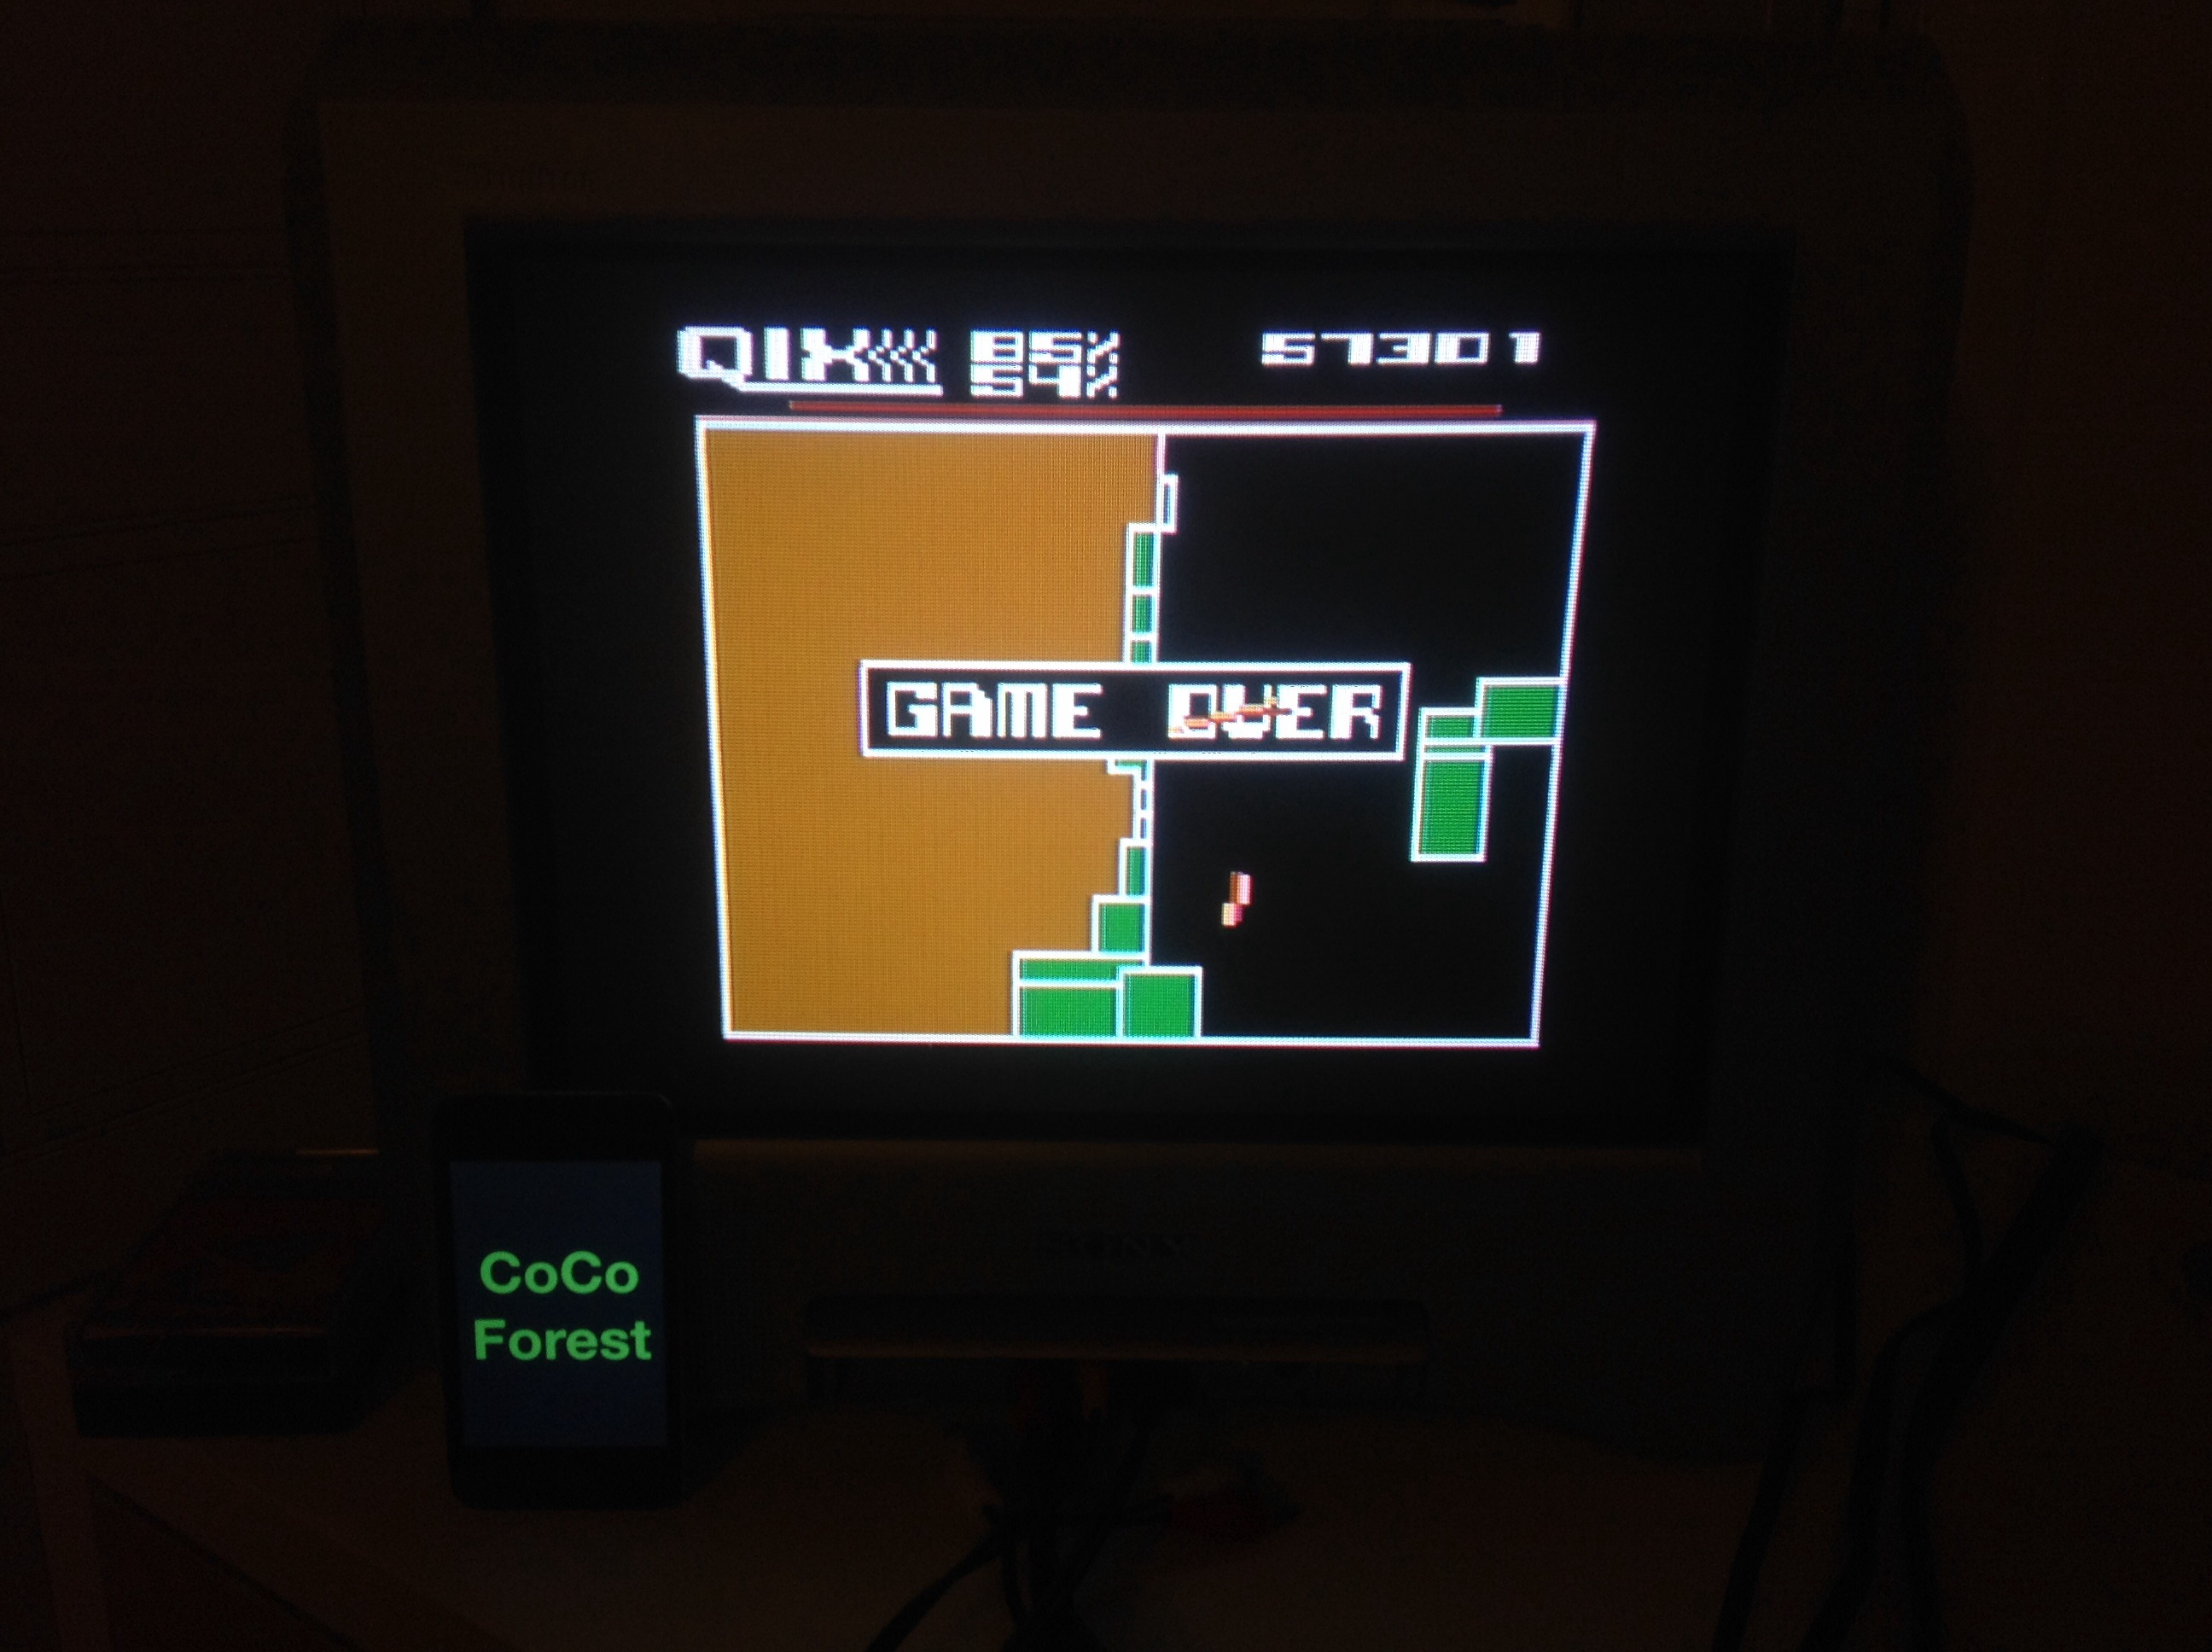 CoCoForest: Qix: Expert (Atari 5200) 57,301 points on 2014-11-03 12:51:51